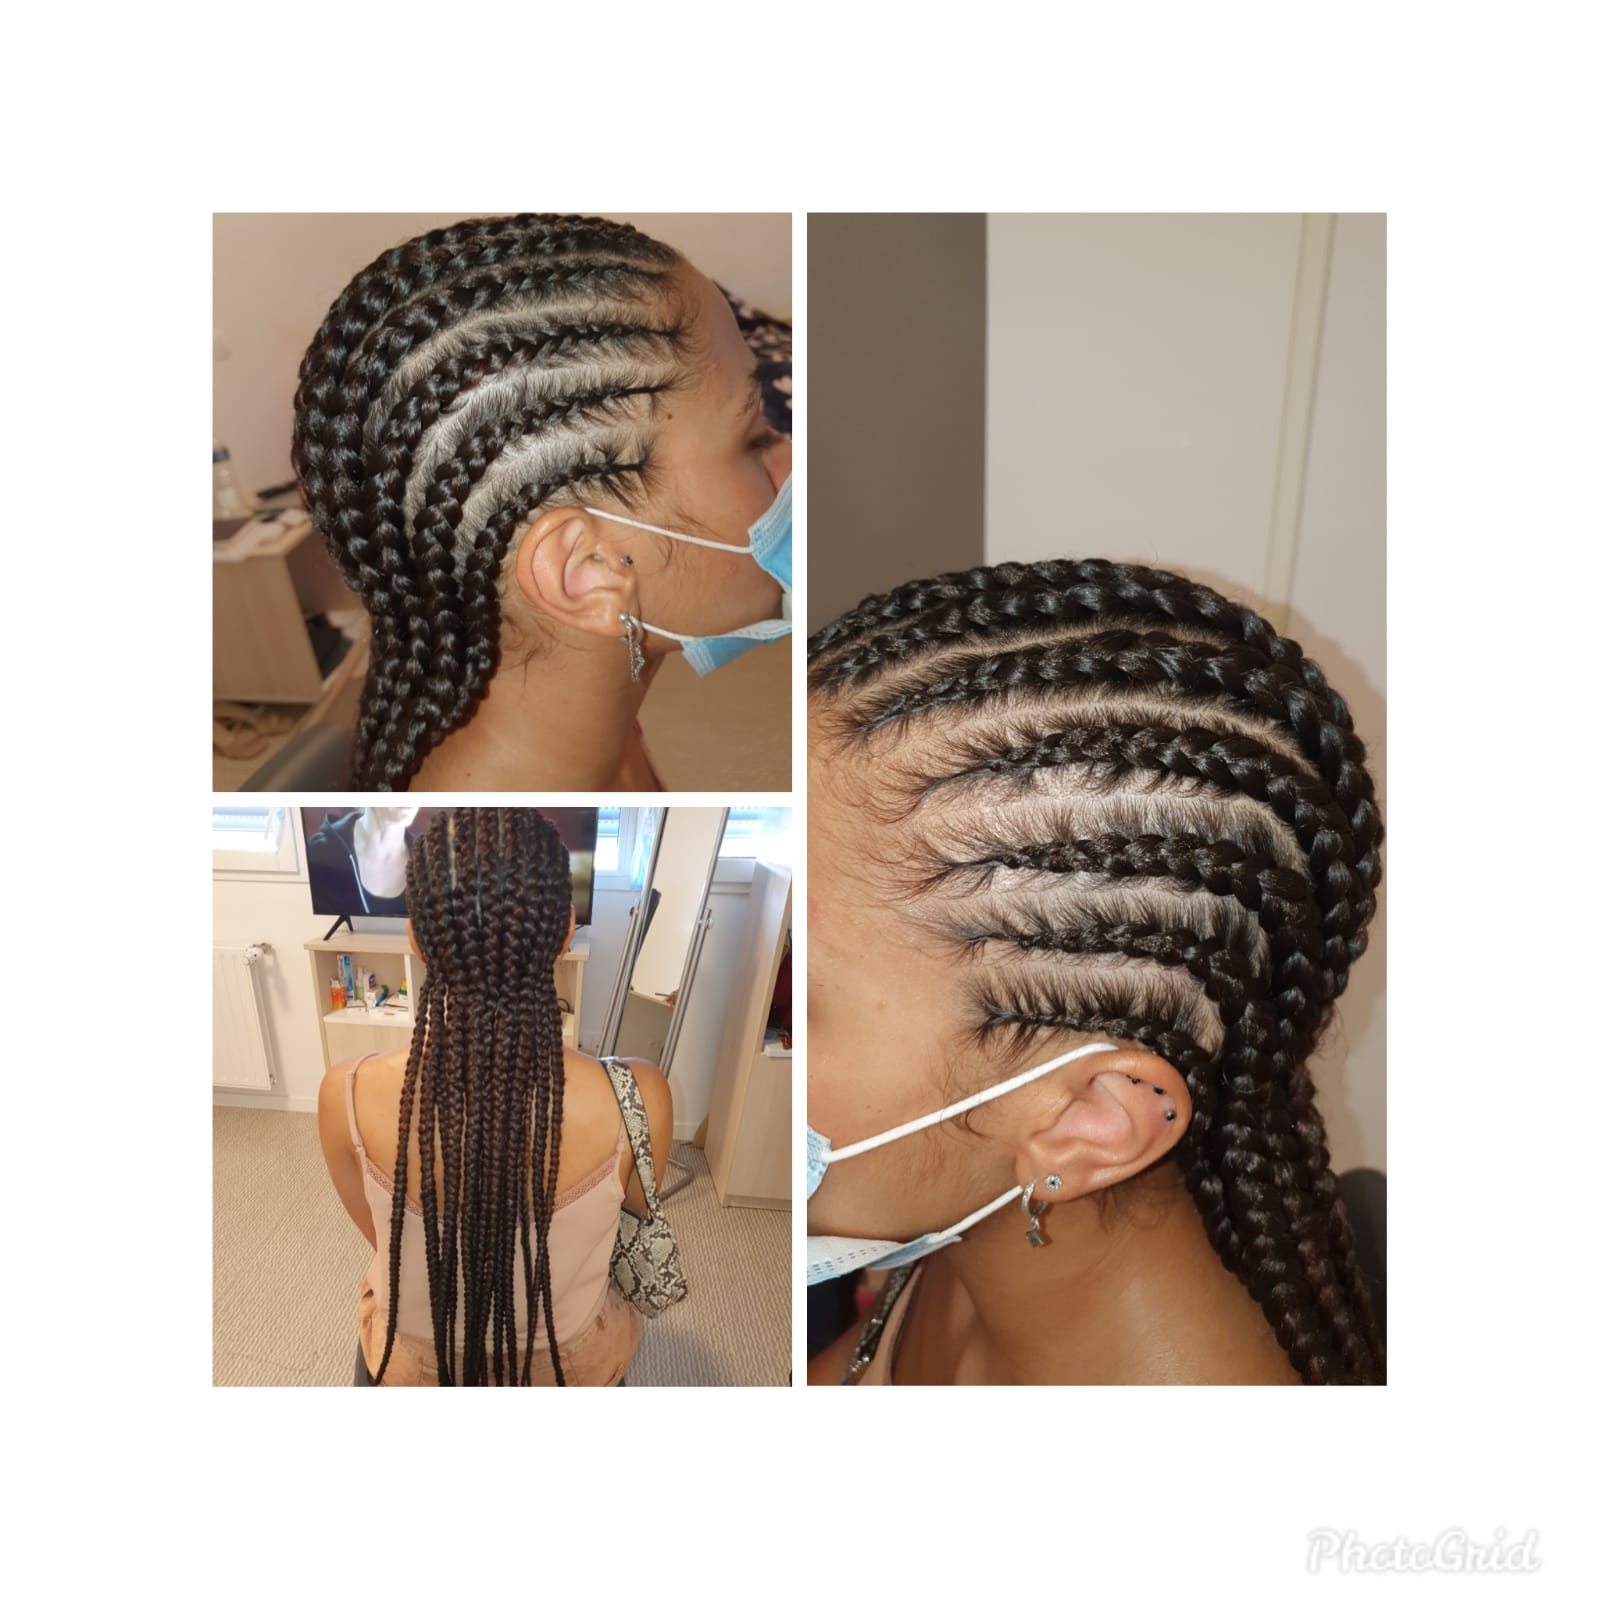 salon de coiffure afro tresse tresses box braids crochet braids vanilles tissages paris 75 77 78 91 92 93 94 95 LEEOKIFN